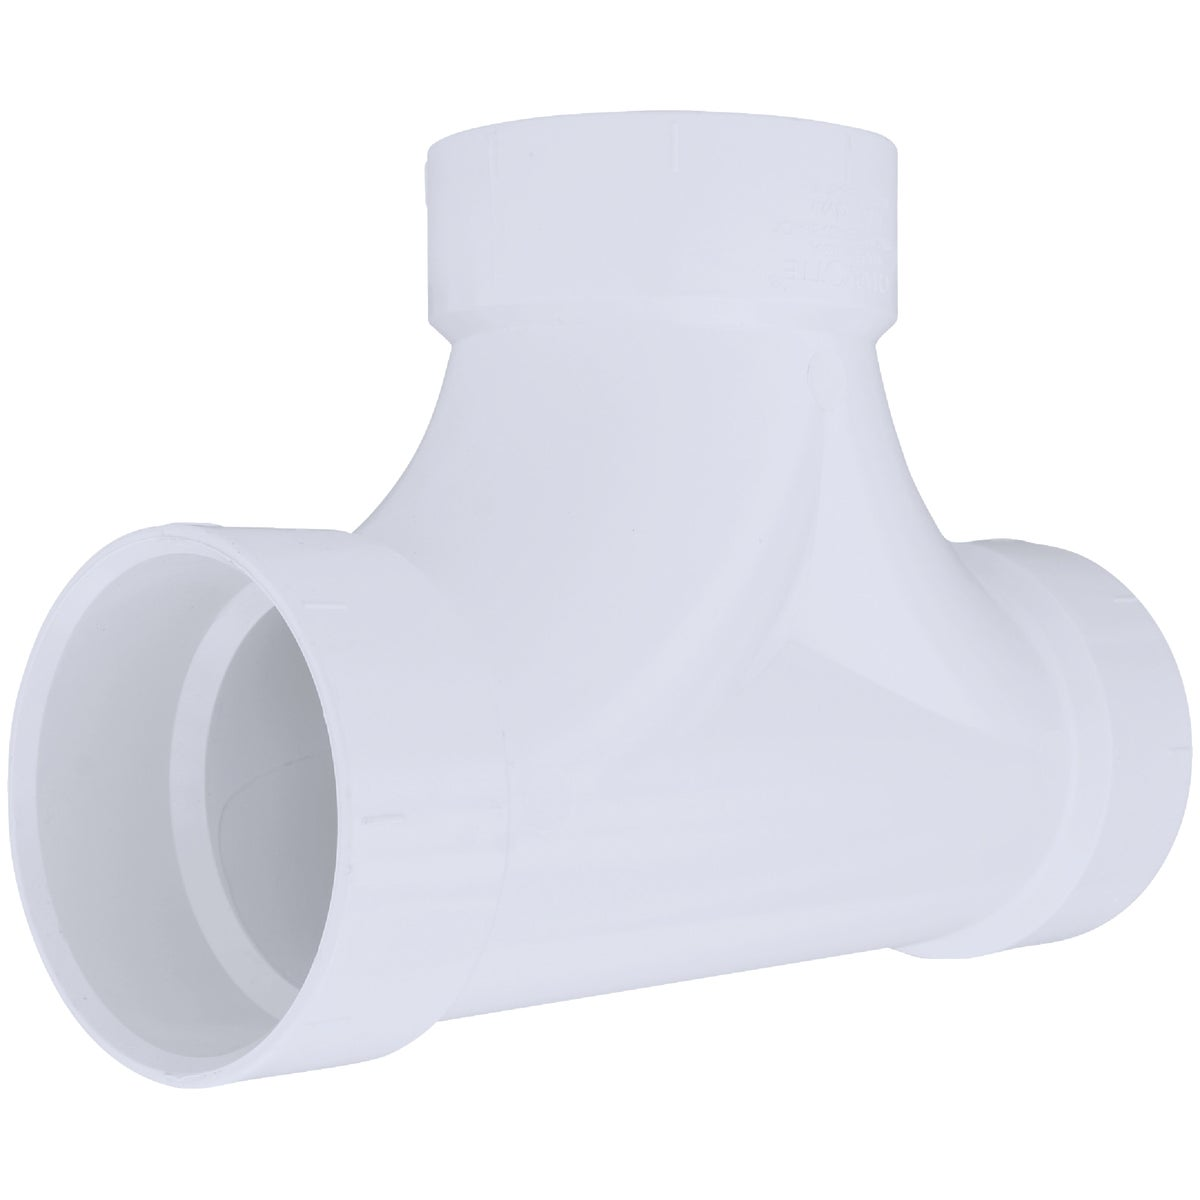 "4"" 2-WAY CLEANOUT TEE - 71644 by Genova Inc  Pvc Dwv"